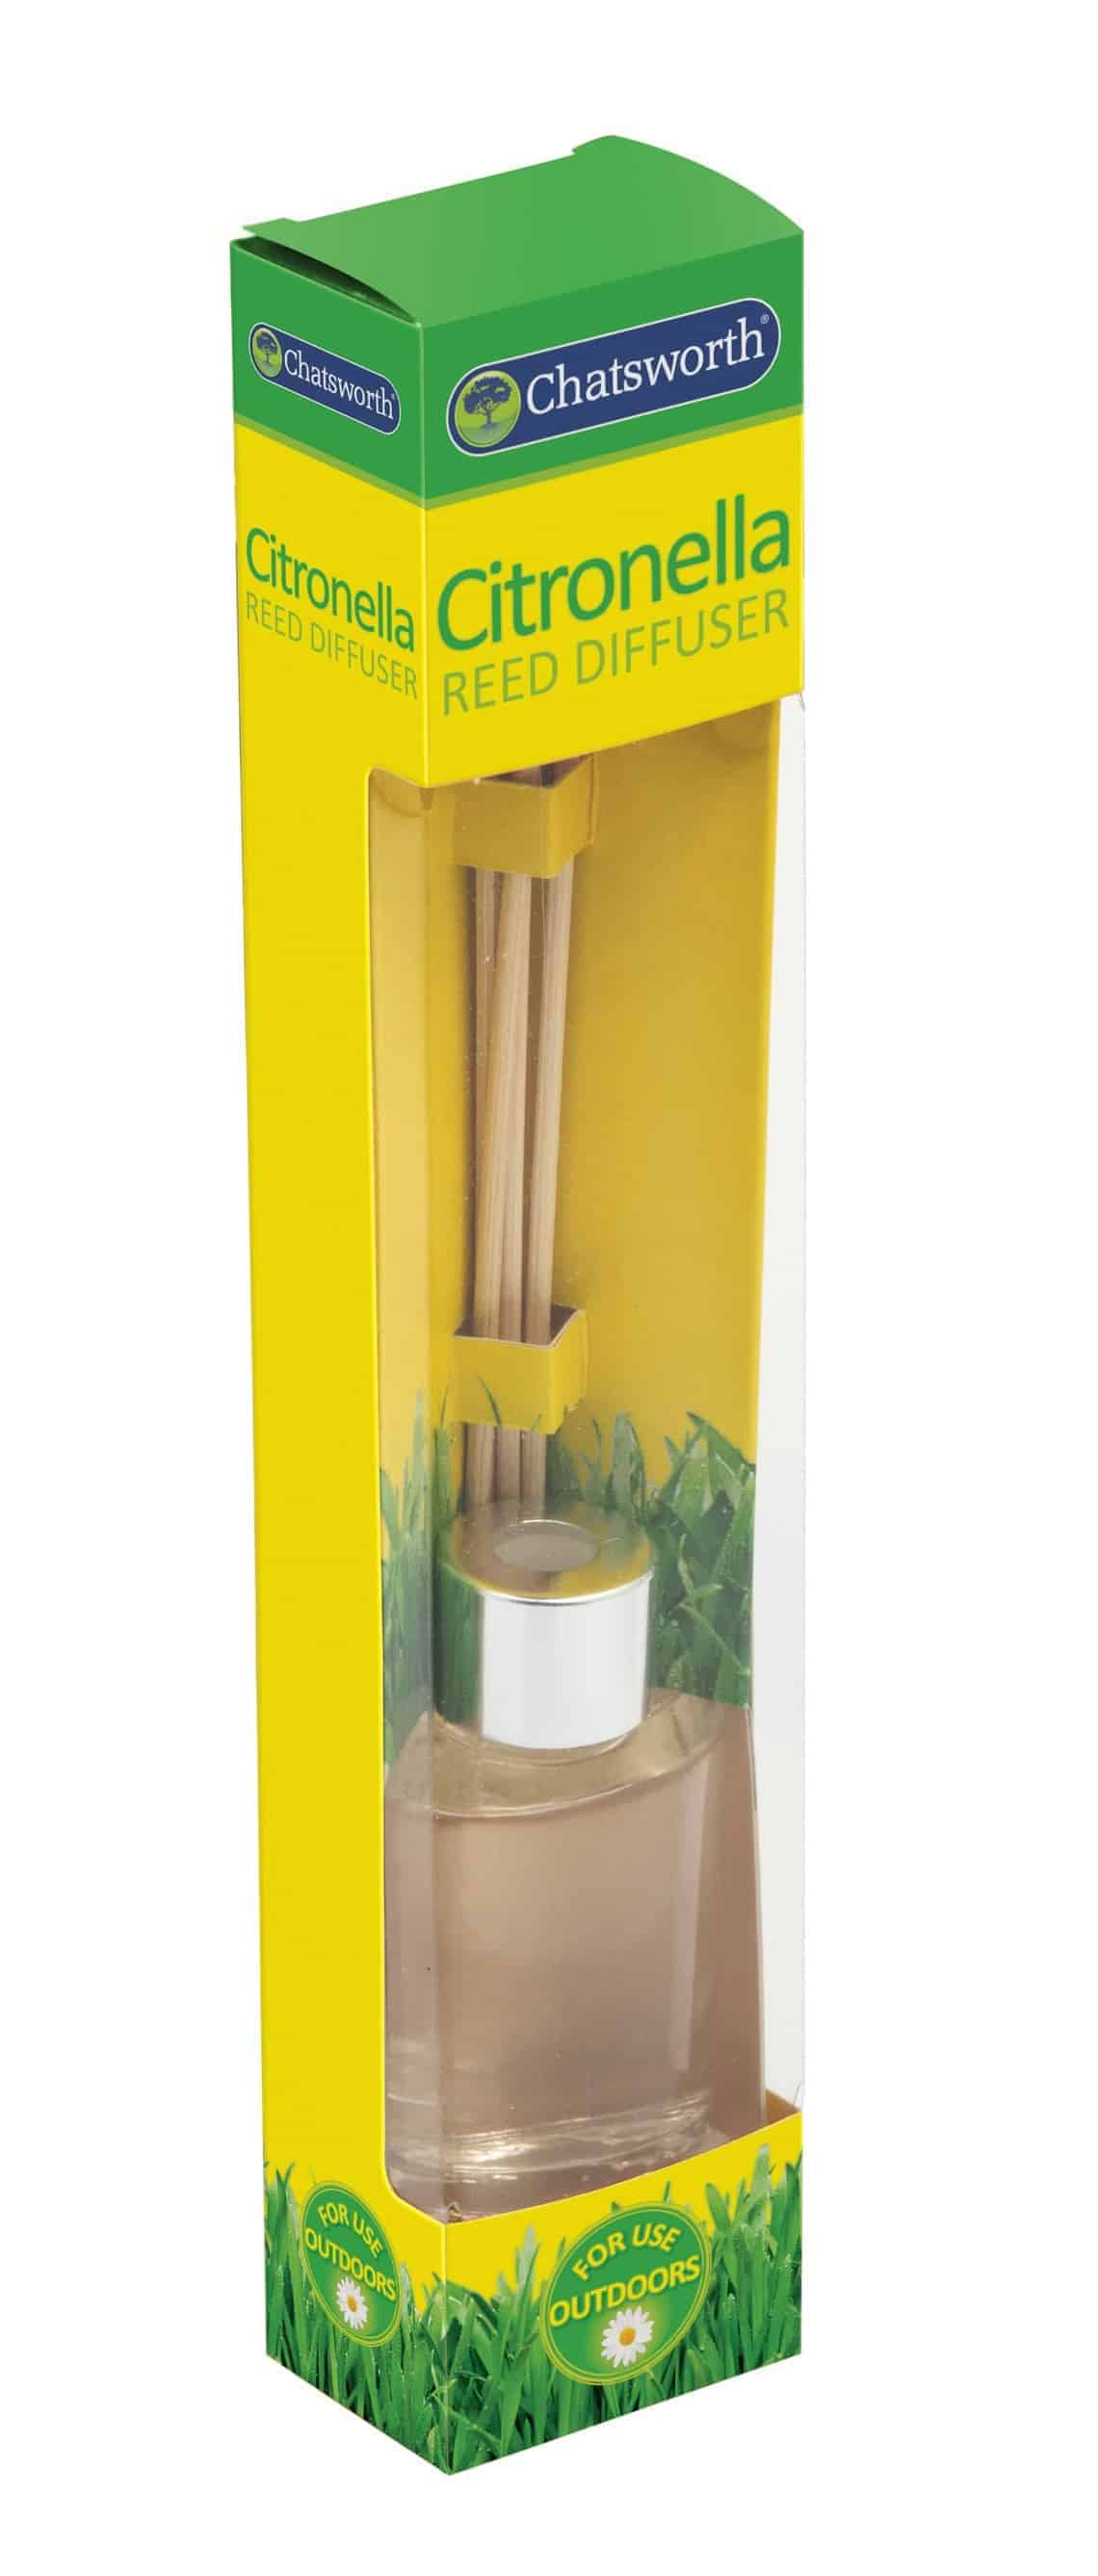 Chatsworth Reed Diffuser-Citronella 30Ml